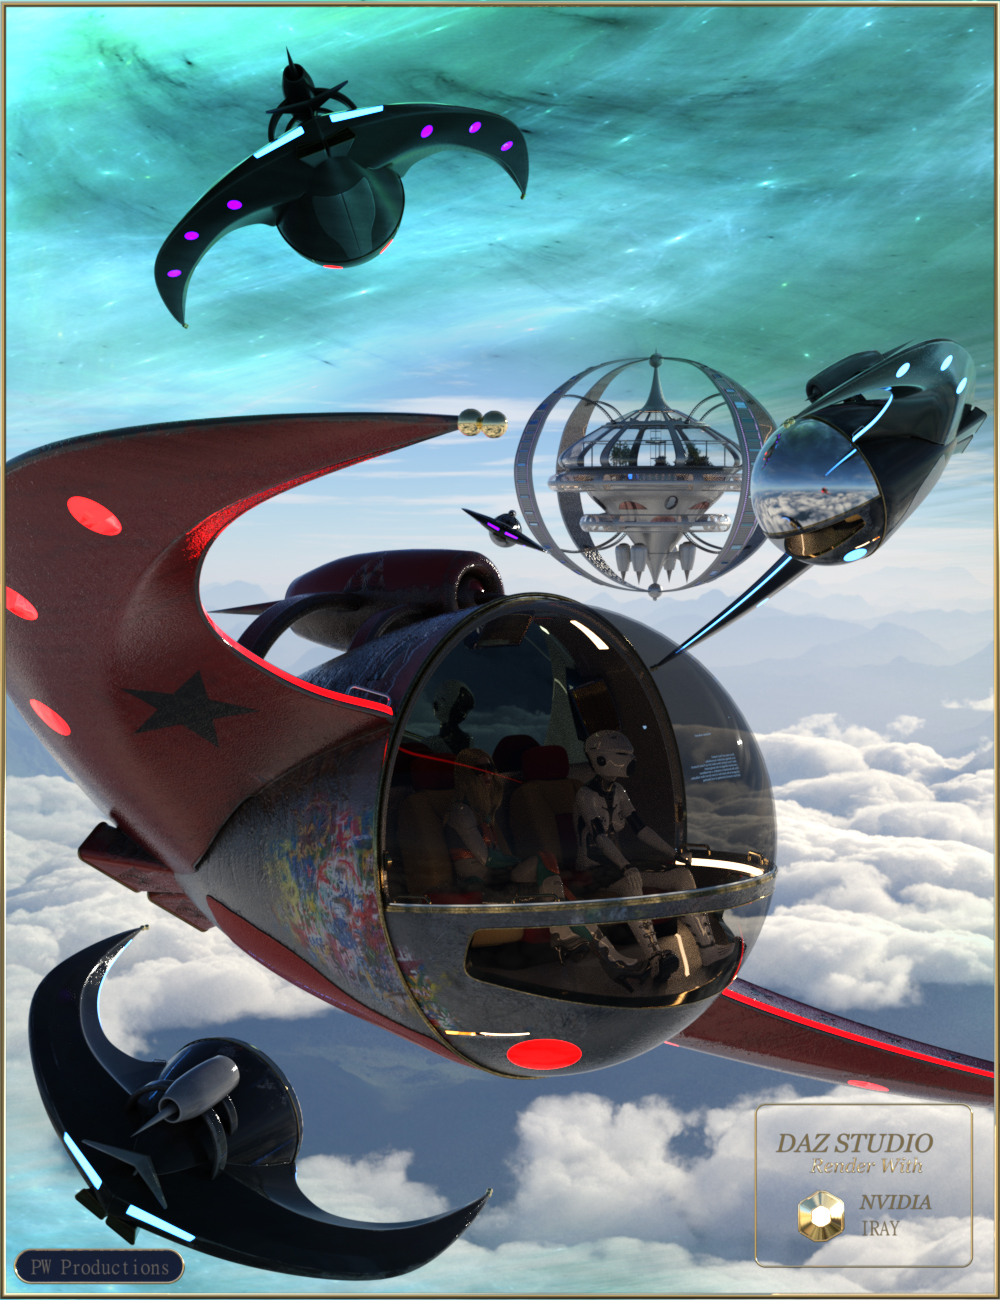 PW Gyro Wing by: PW Productions, 3D Models by Daz 3D